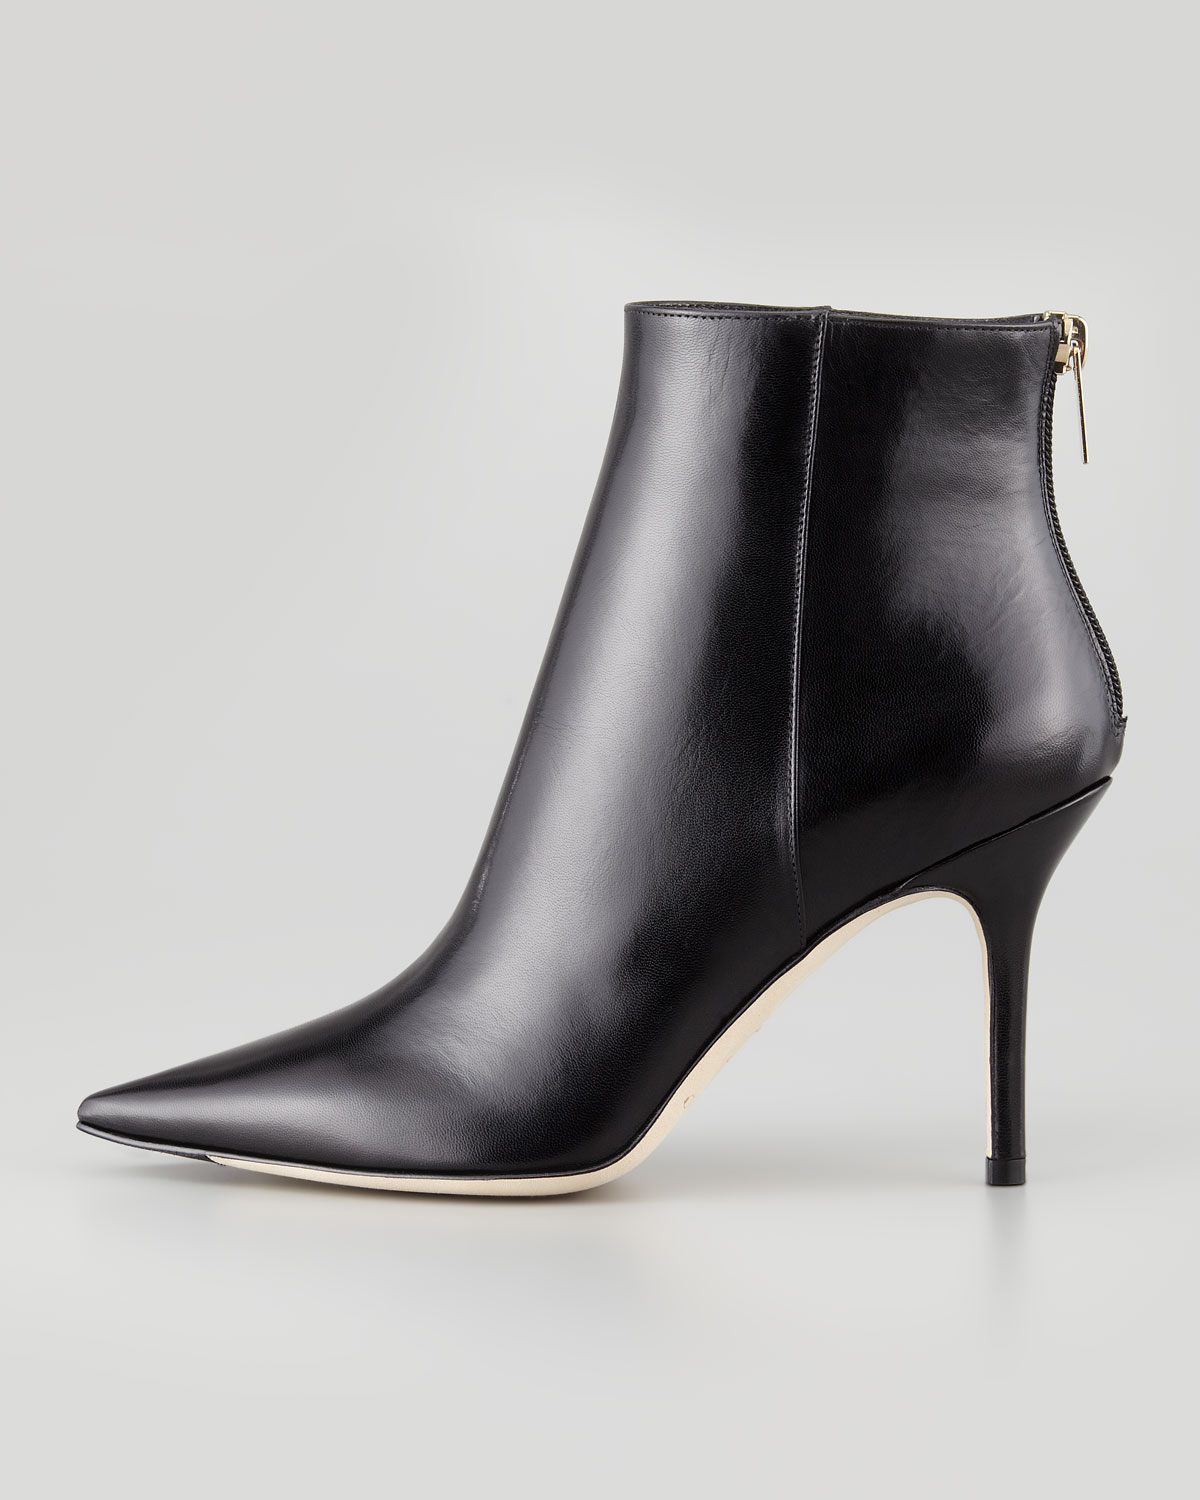 Shop pointed toe leather boot at Neiman Marcus, where you will find free shipping on the latest in fashion from top designers.